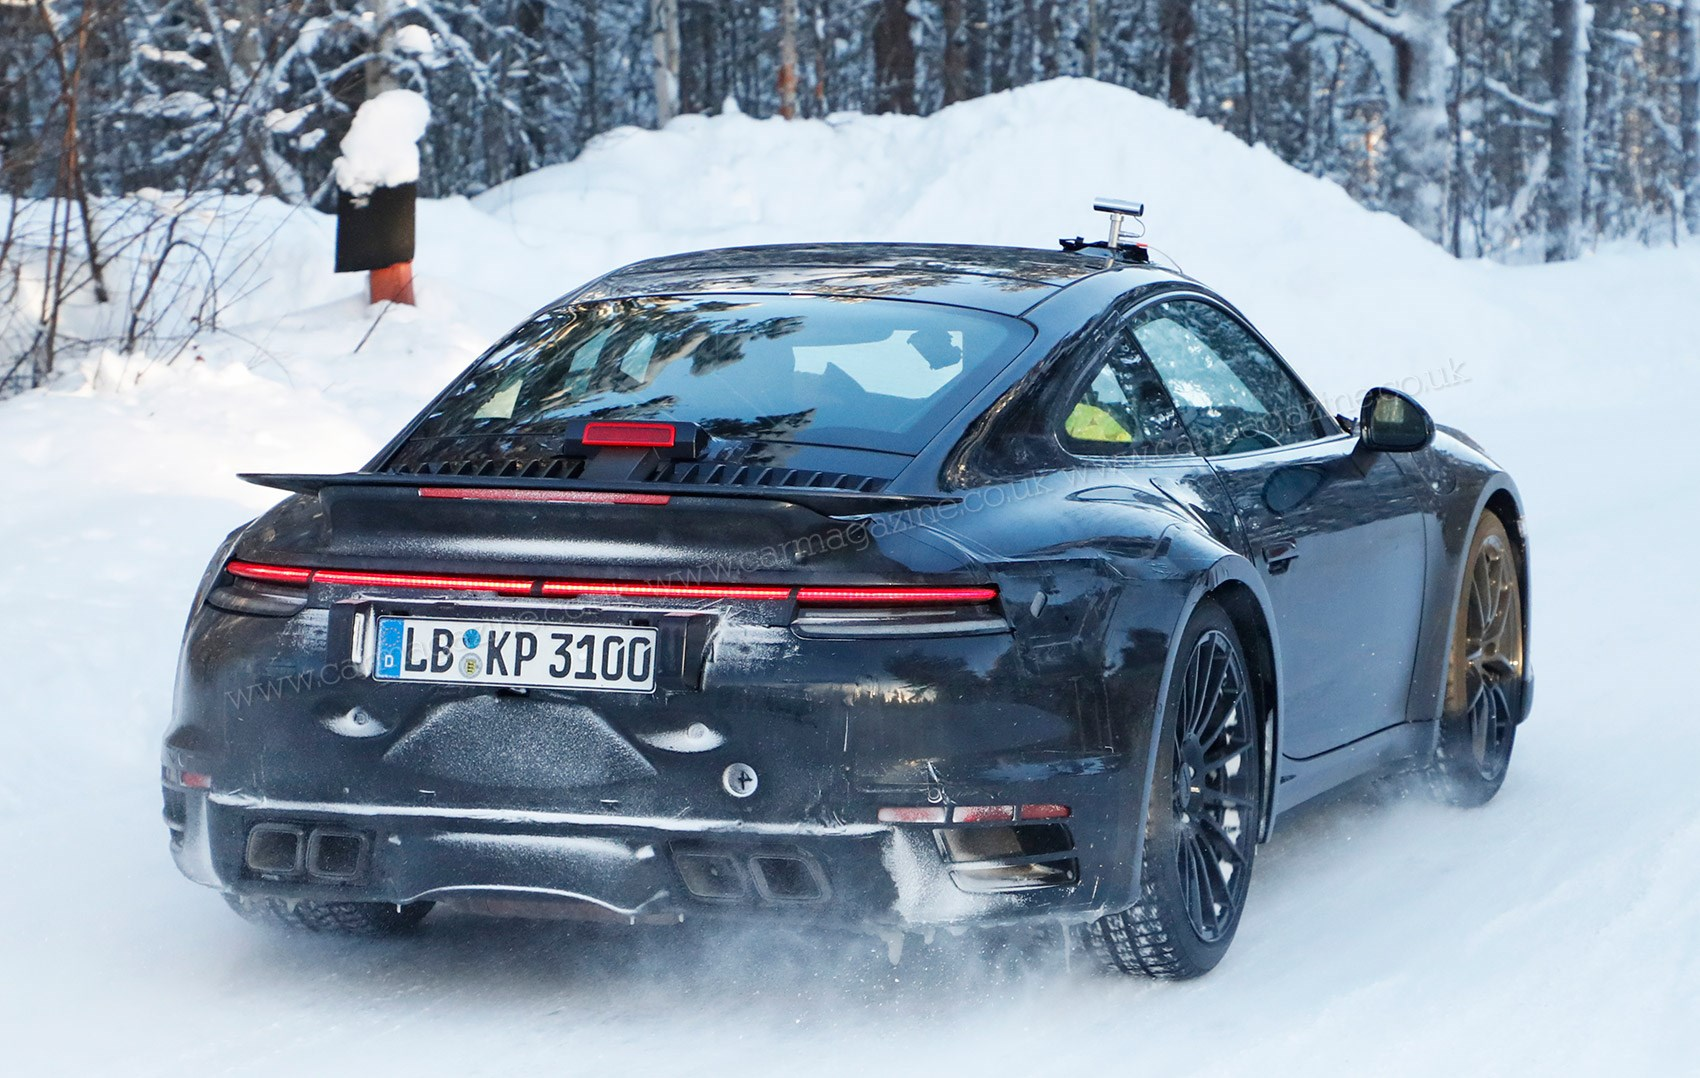 Porsche will show you how strap on is done